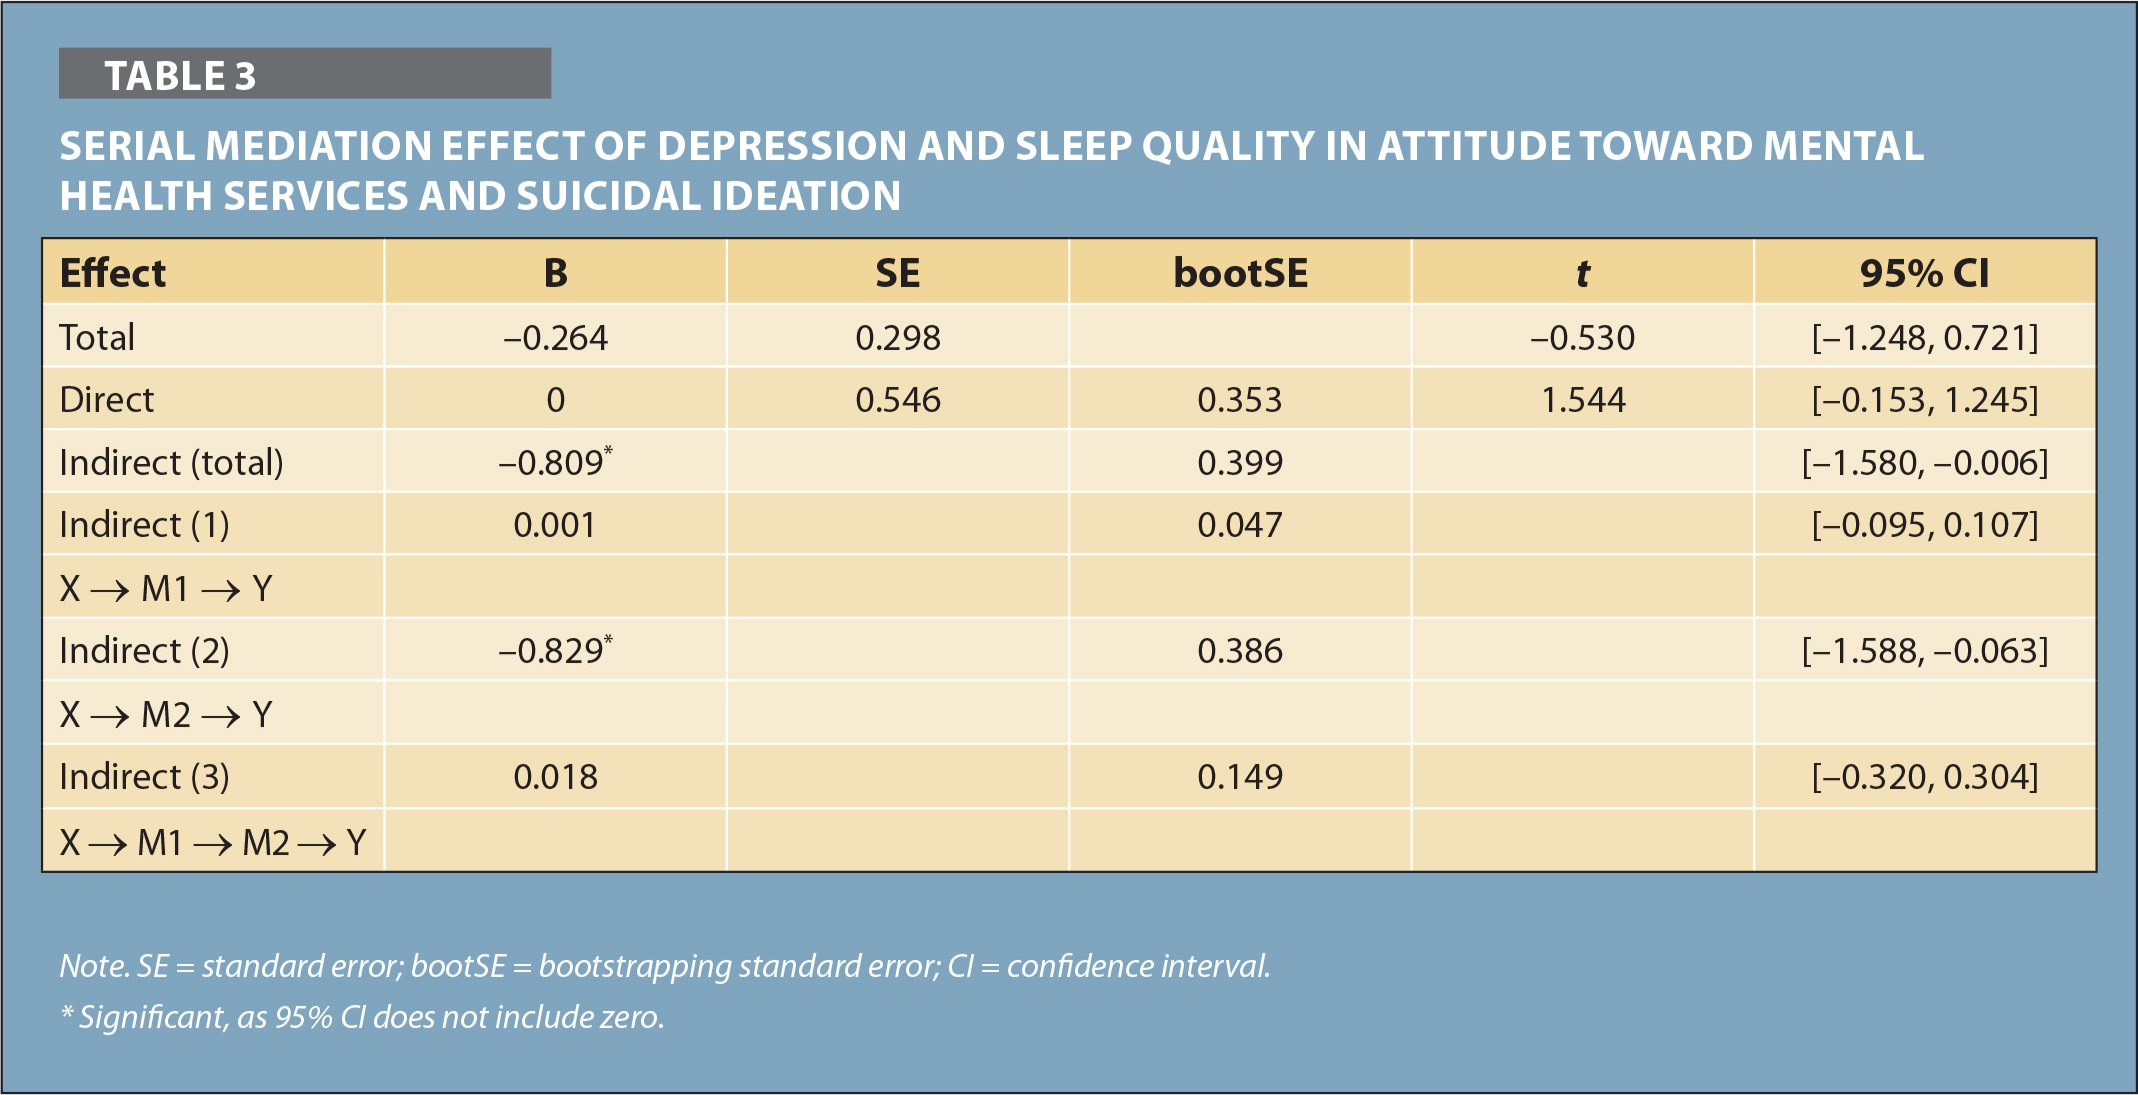 Serial Mediation Effect of Depression and Sleep Quality in Attitude Toward Mental Health Services and Suicidal Ideation